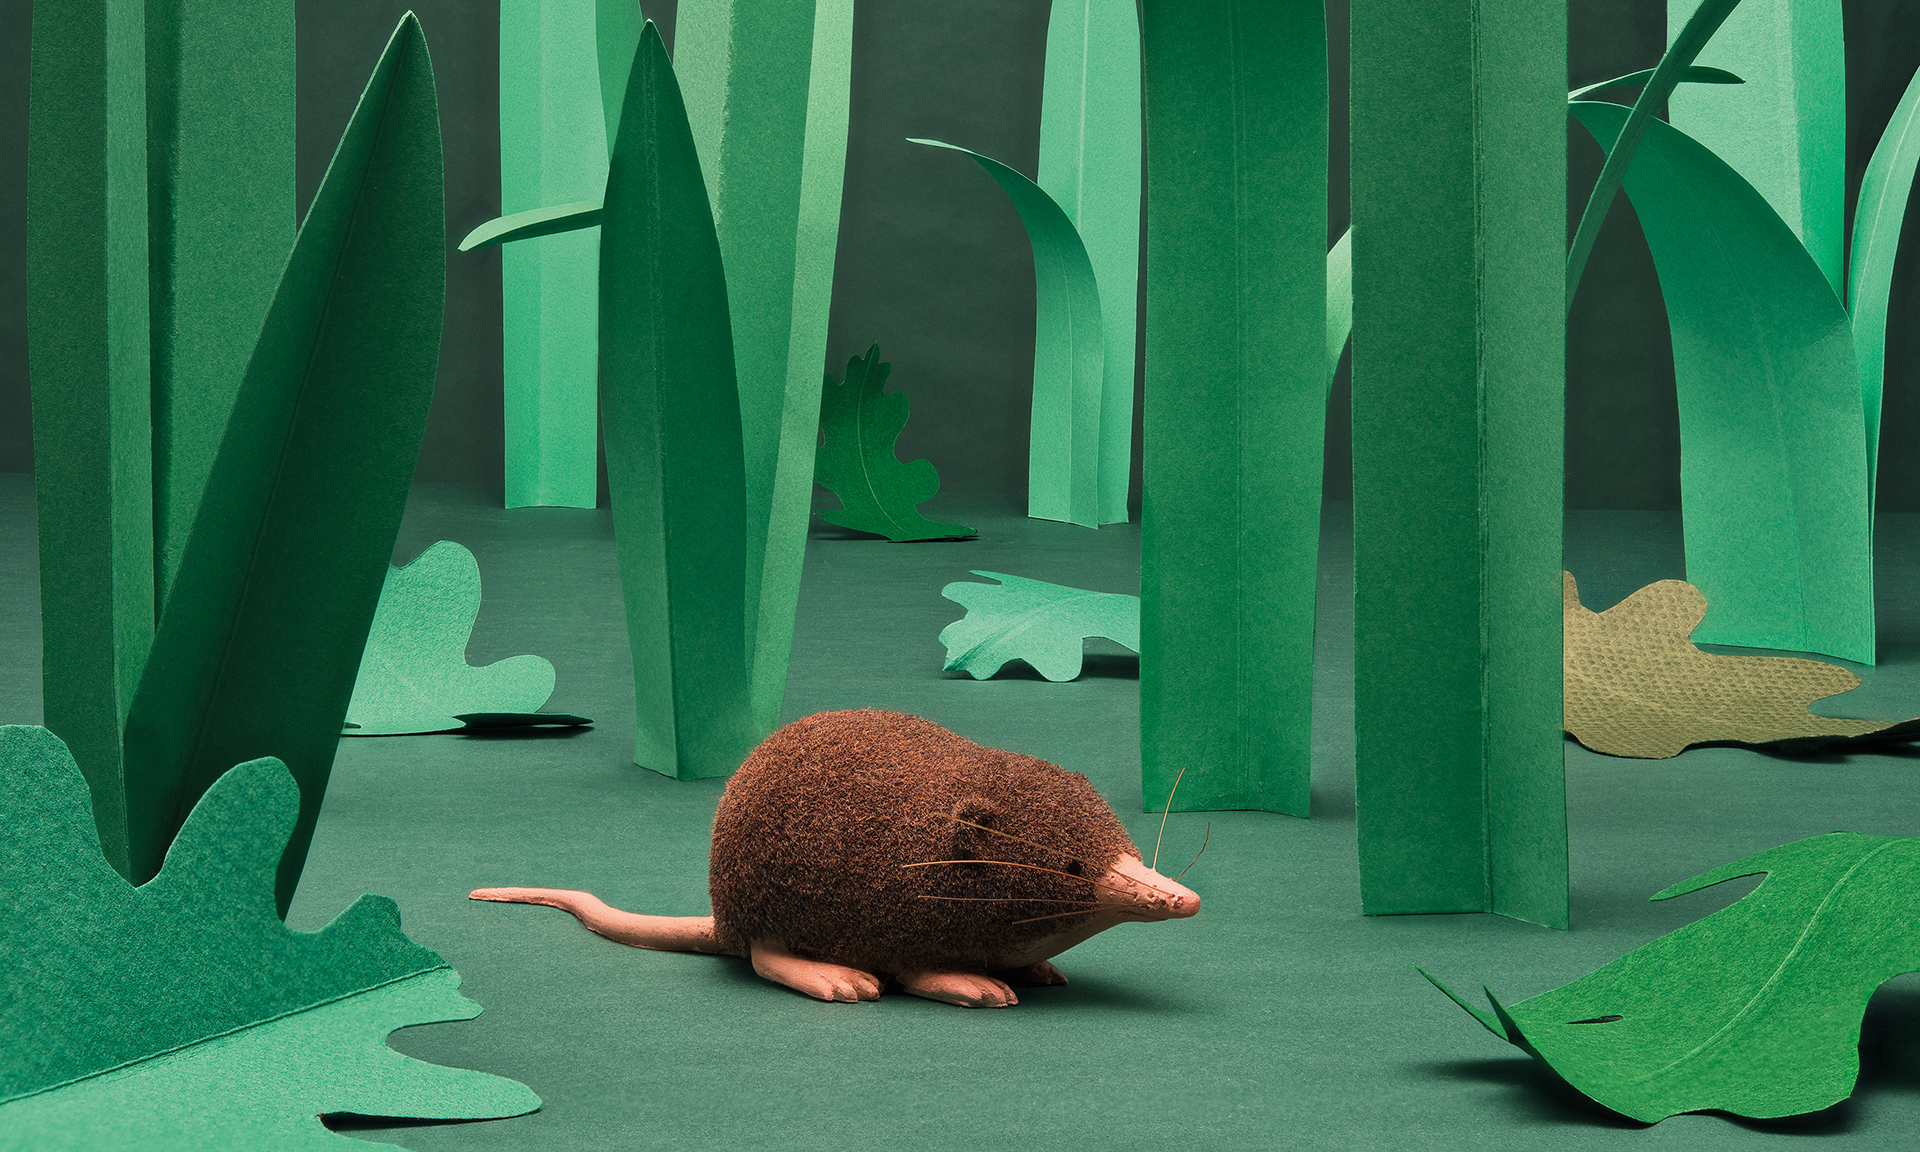 THE LEAST SHREW IS OUR MOST FAVOURITE